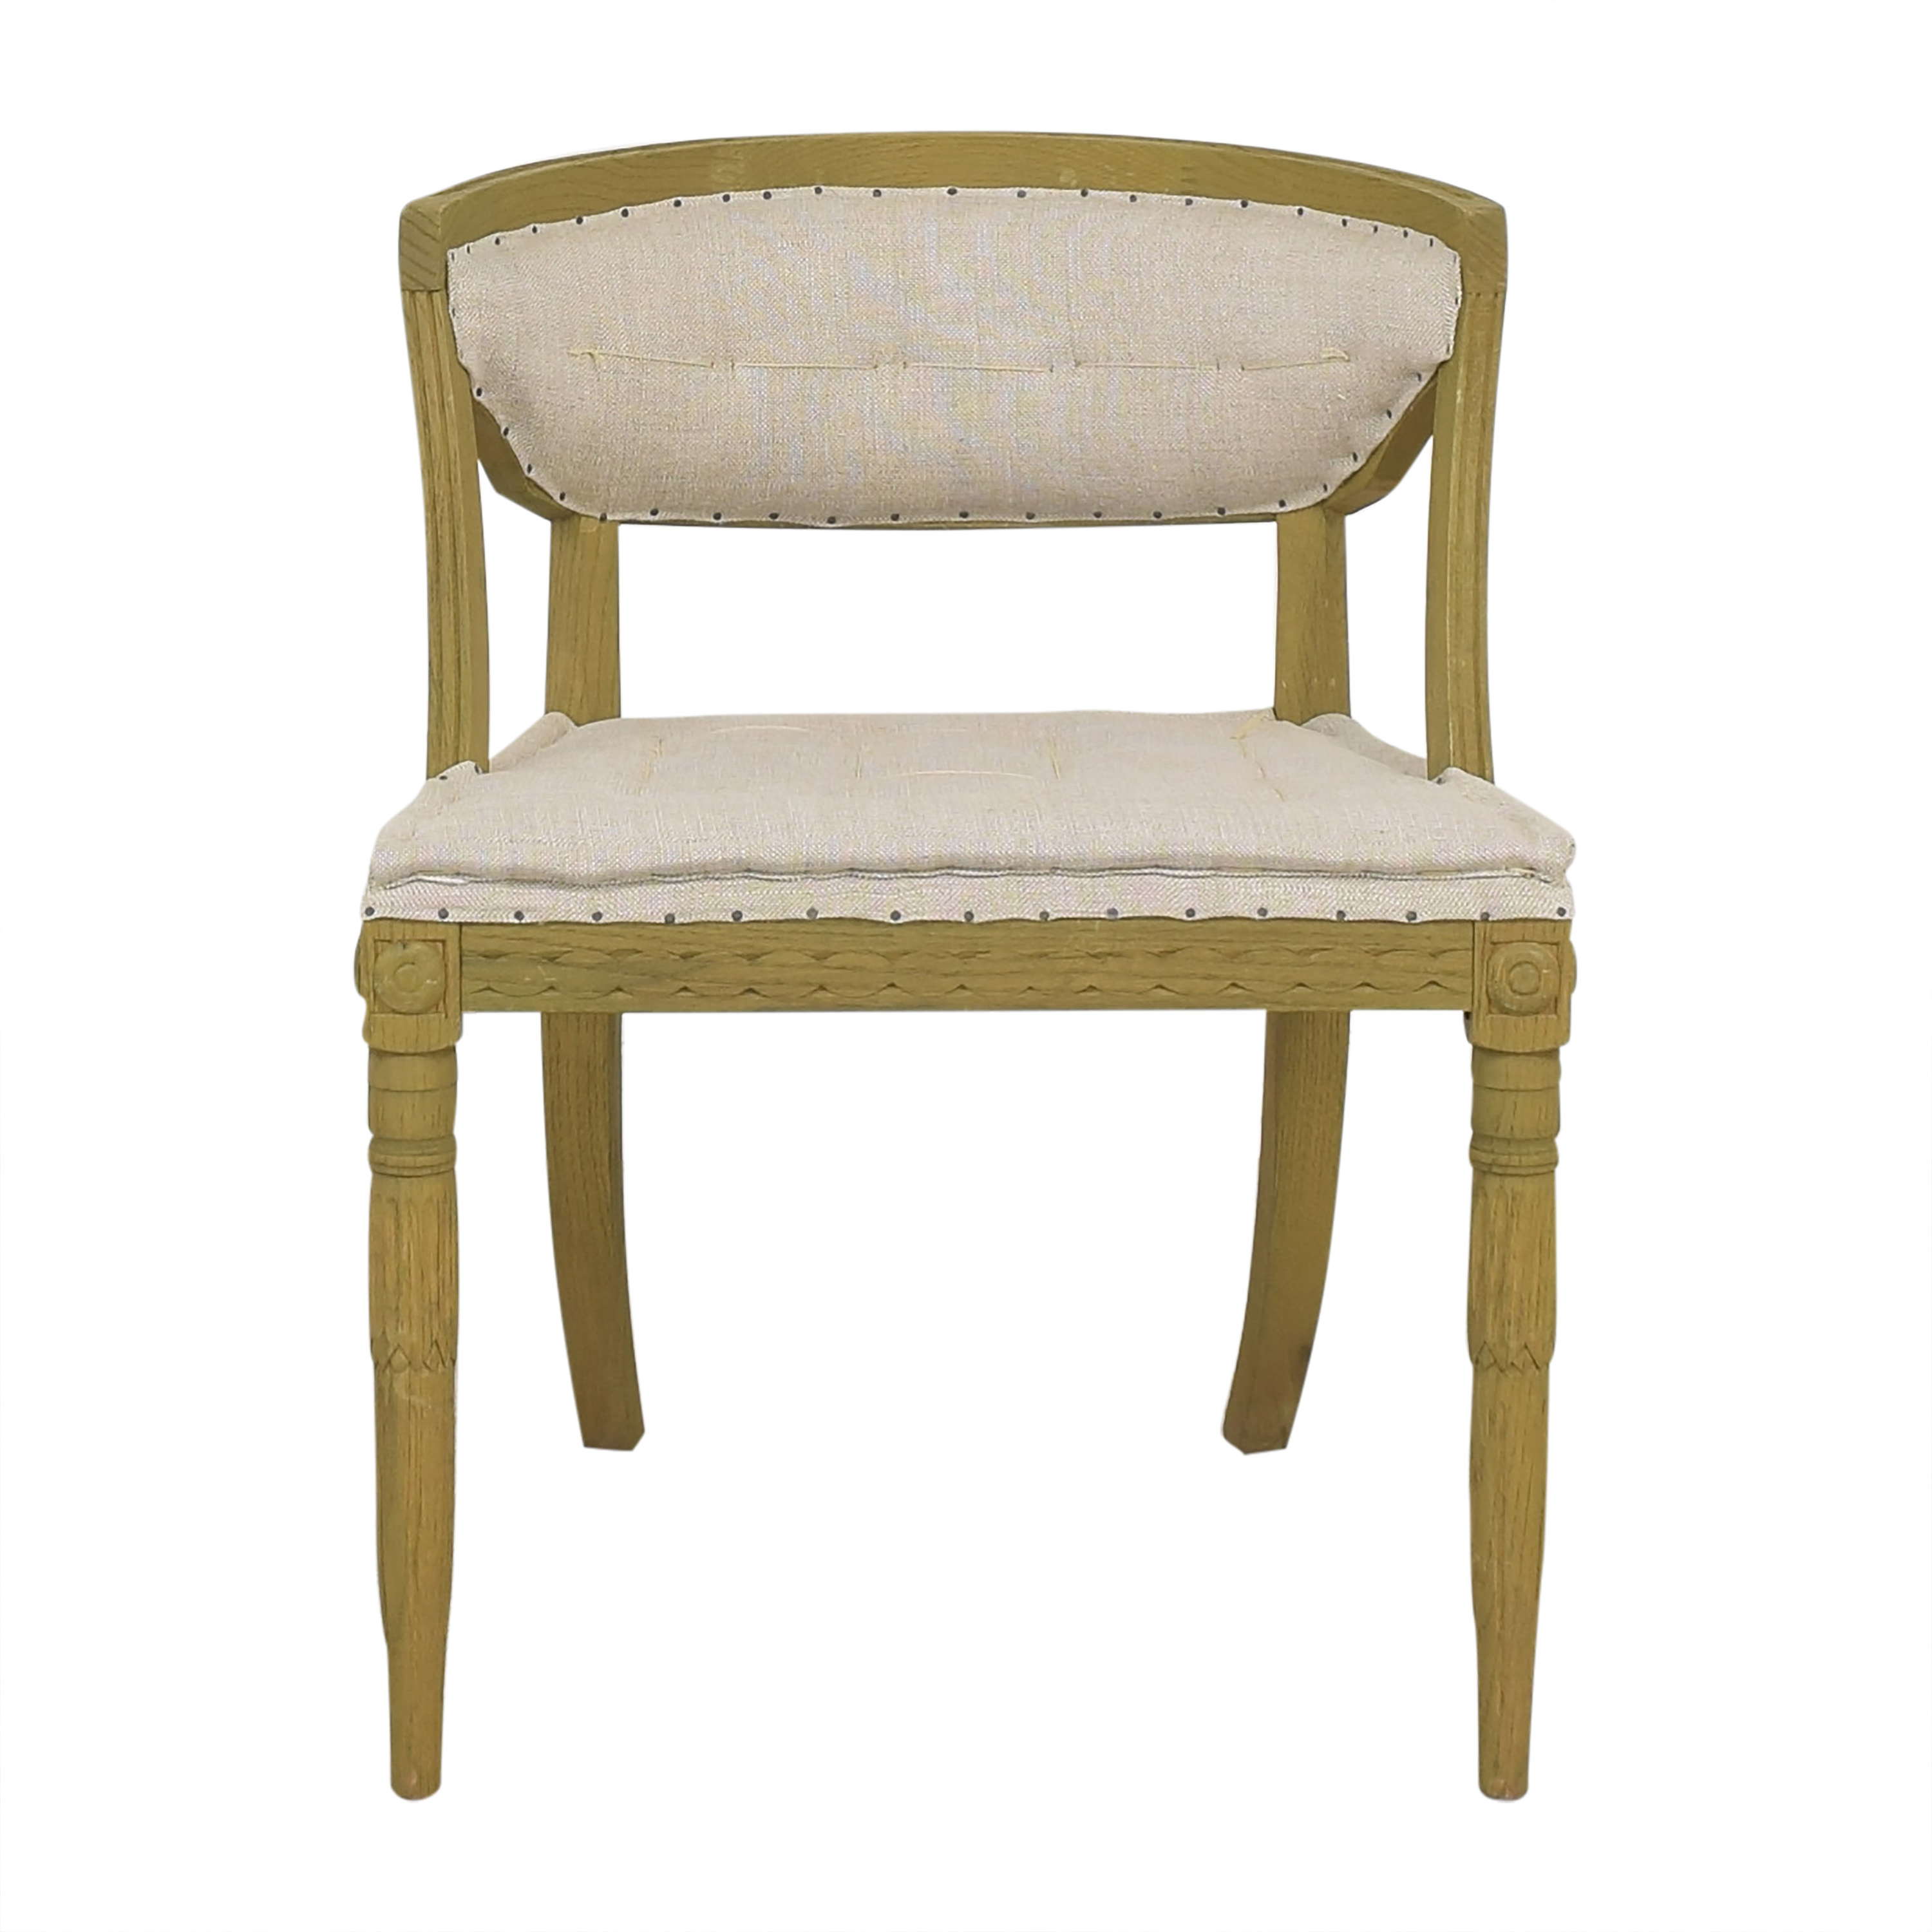 shop Restoration Hardware Restoration Hardware Upholstered Dining Chair online